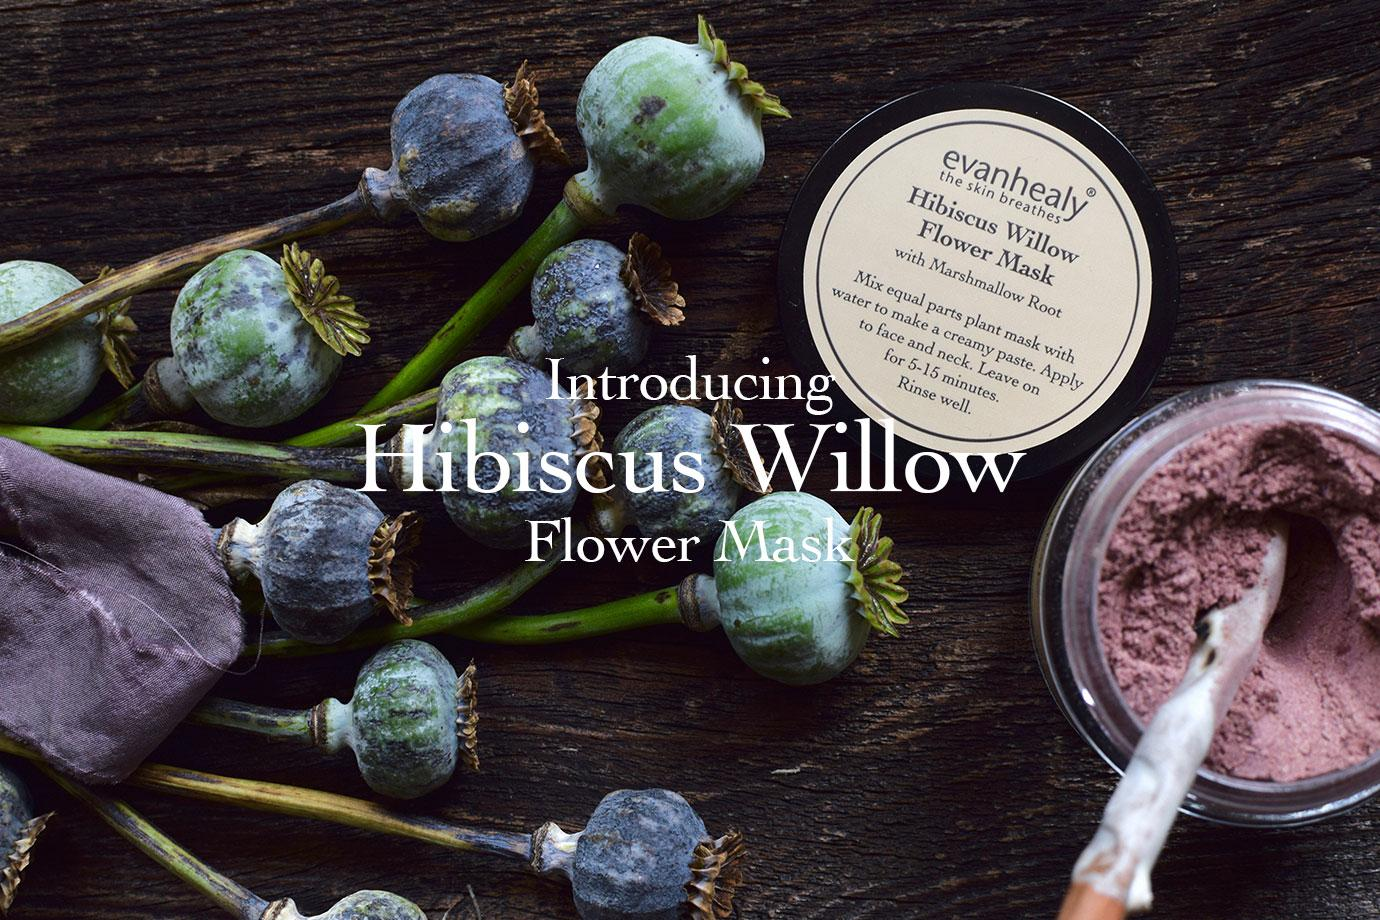 Introducing Hibiscus Willow Flower Mask